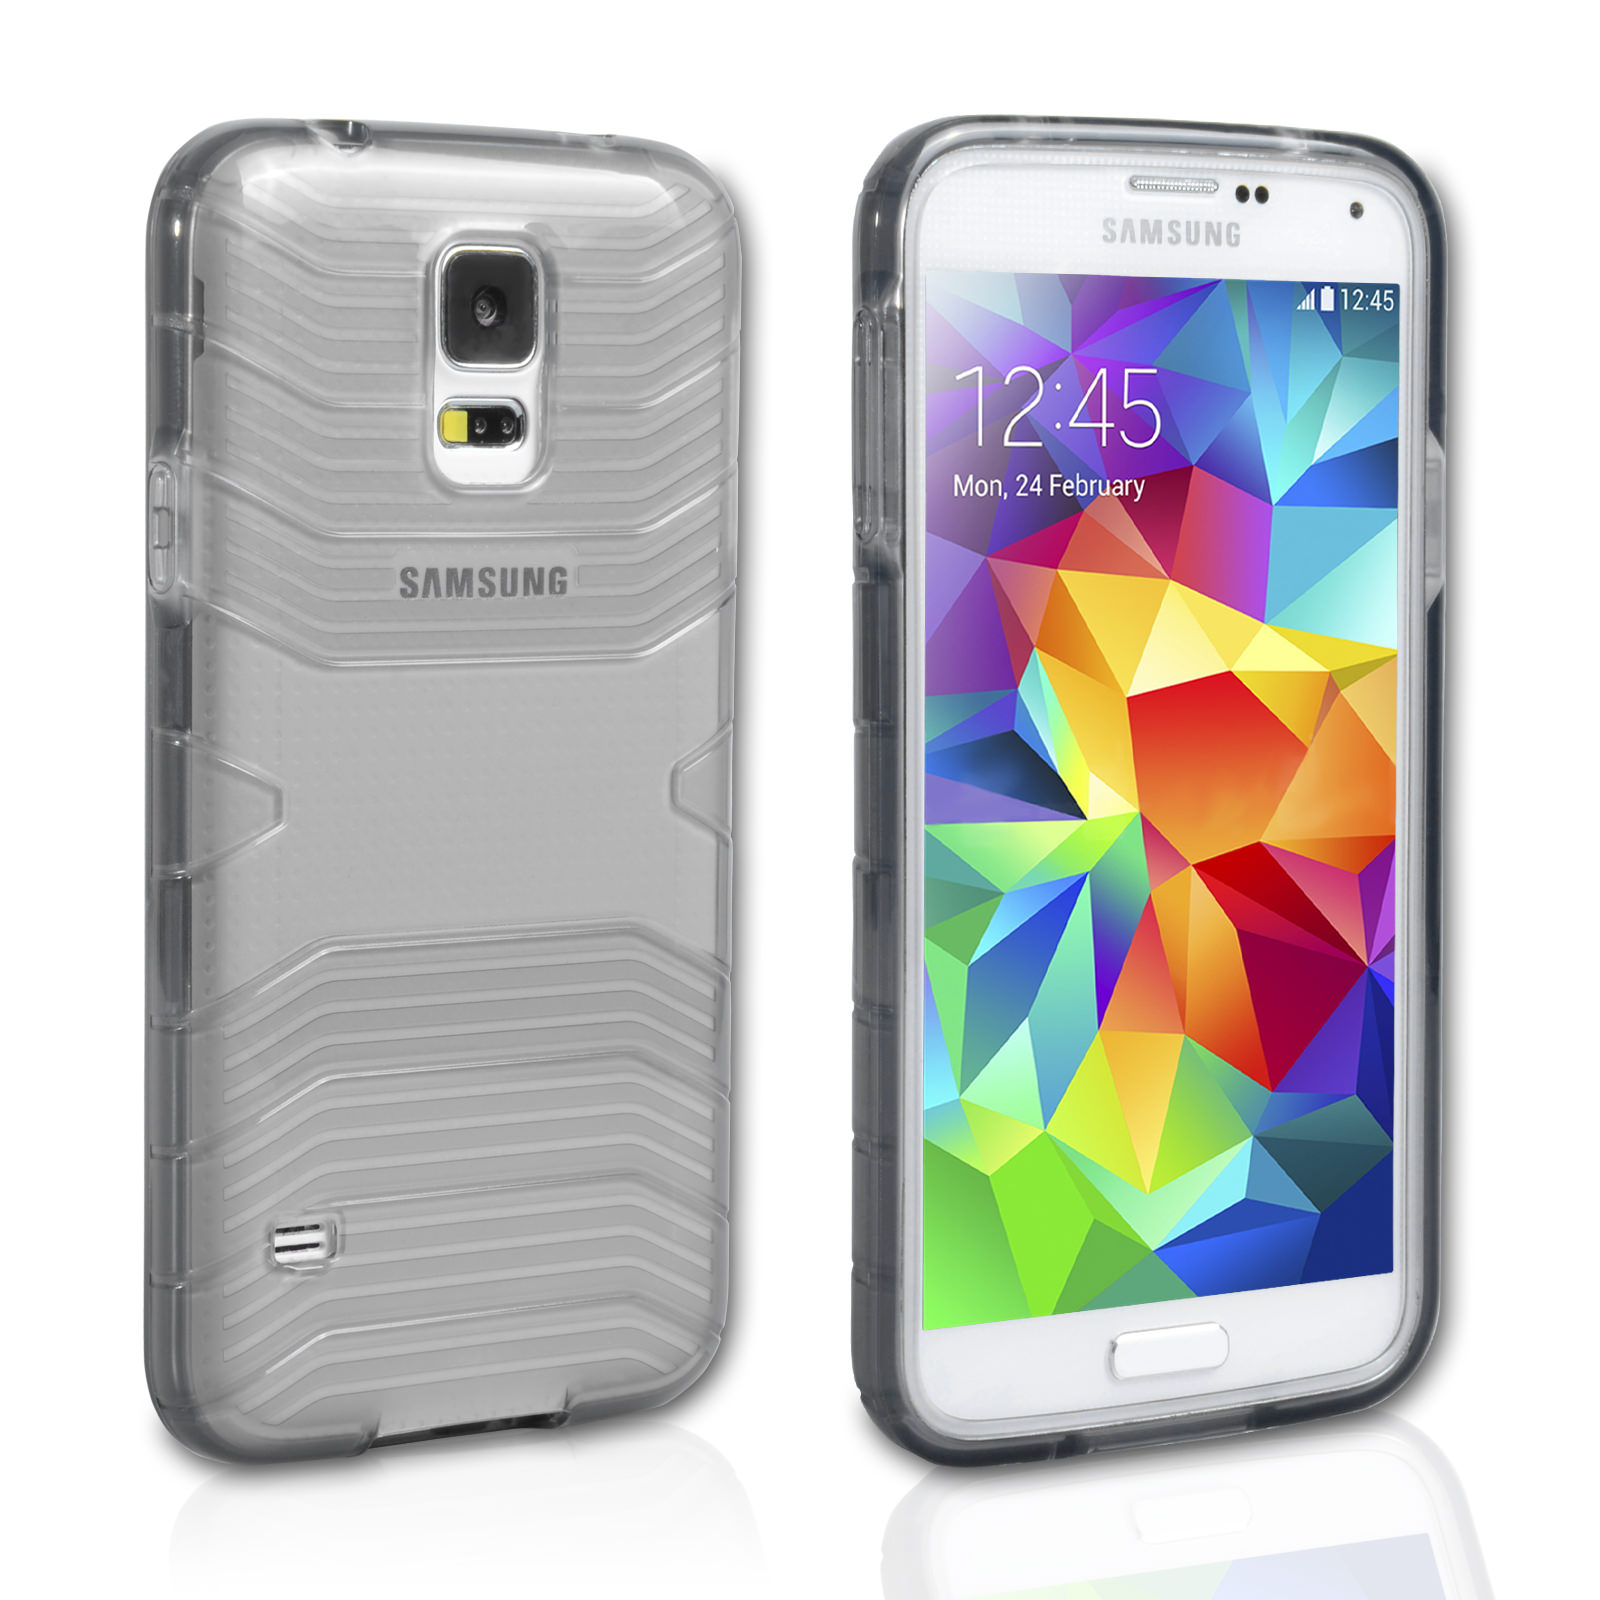 Official Samsung Galaxy S5 Protective Cover Plus Dark - Gray